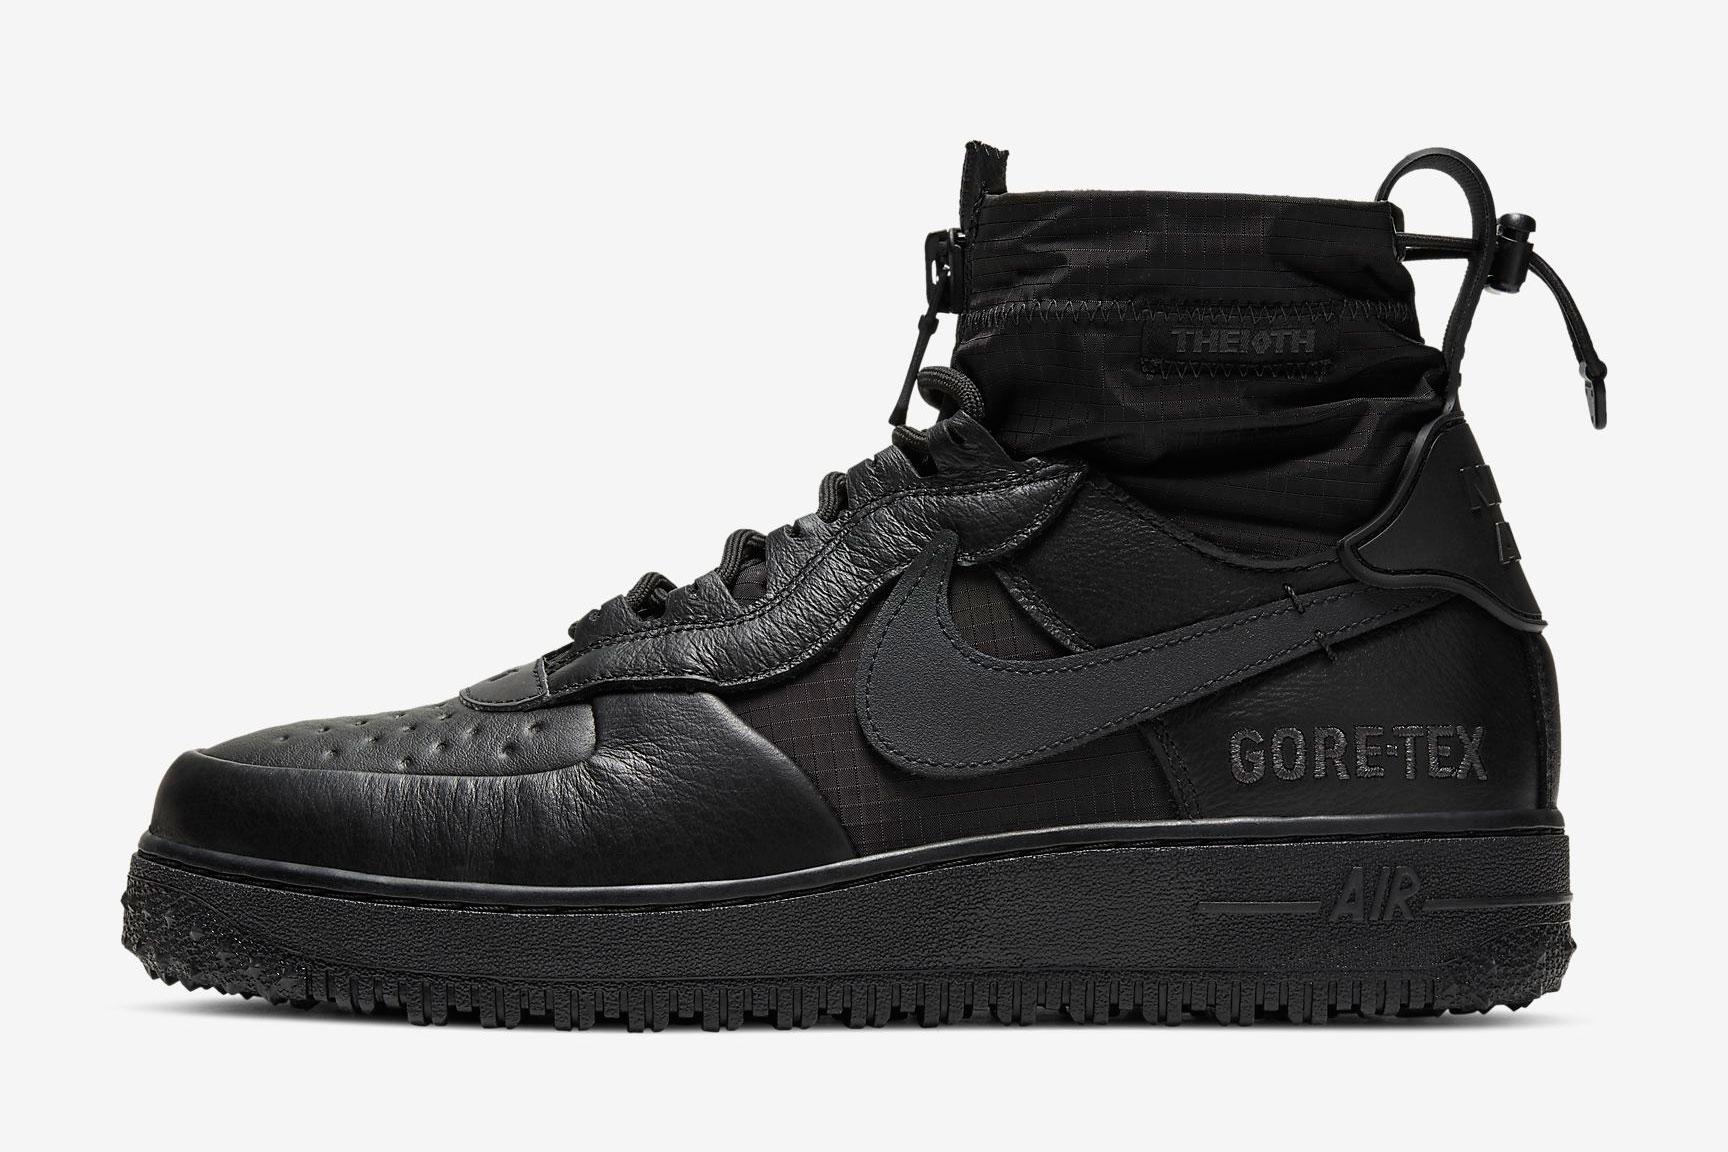 nike-air-force-1-winter-goretex-boot-black-release-date